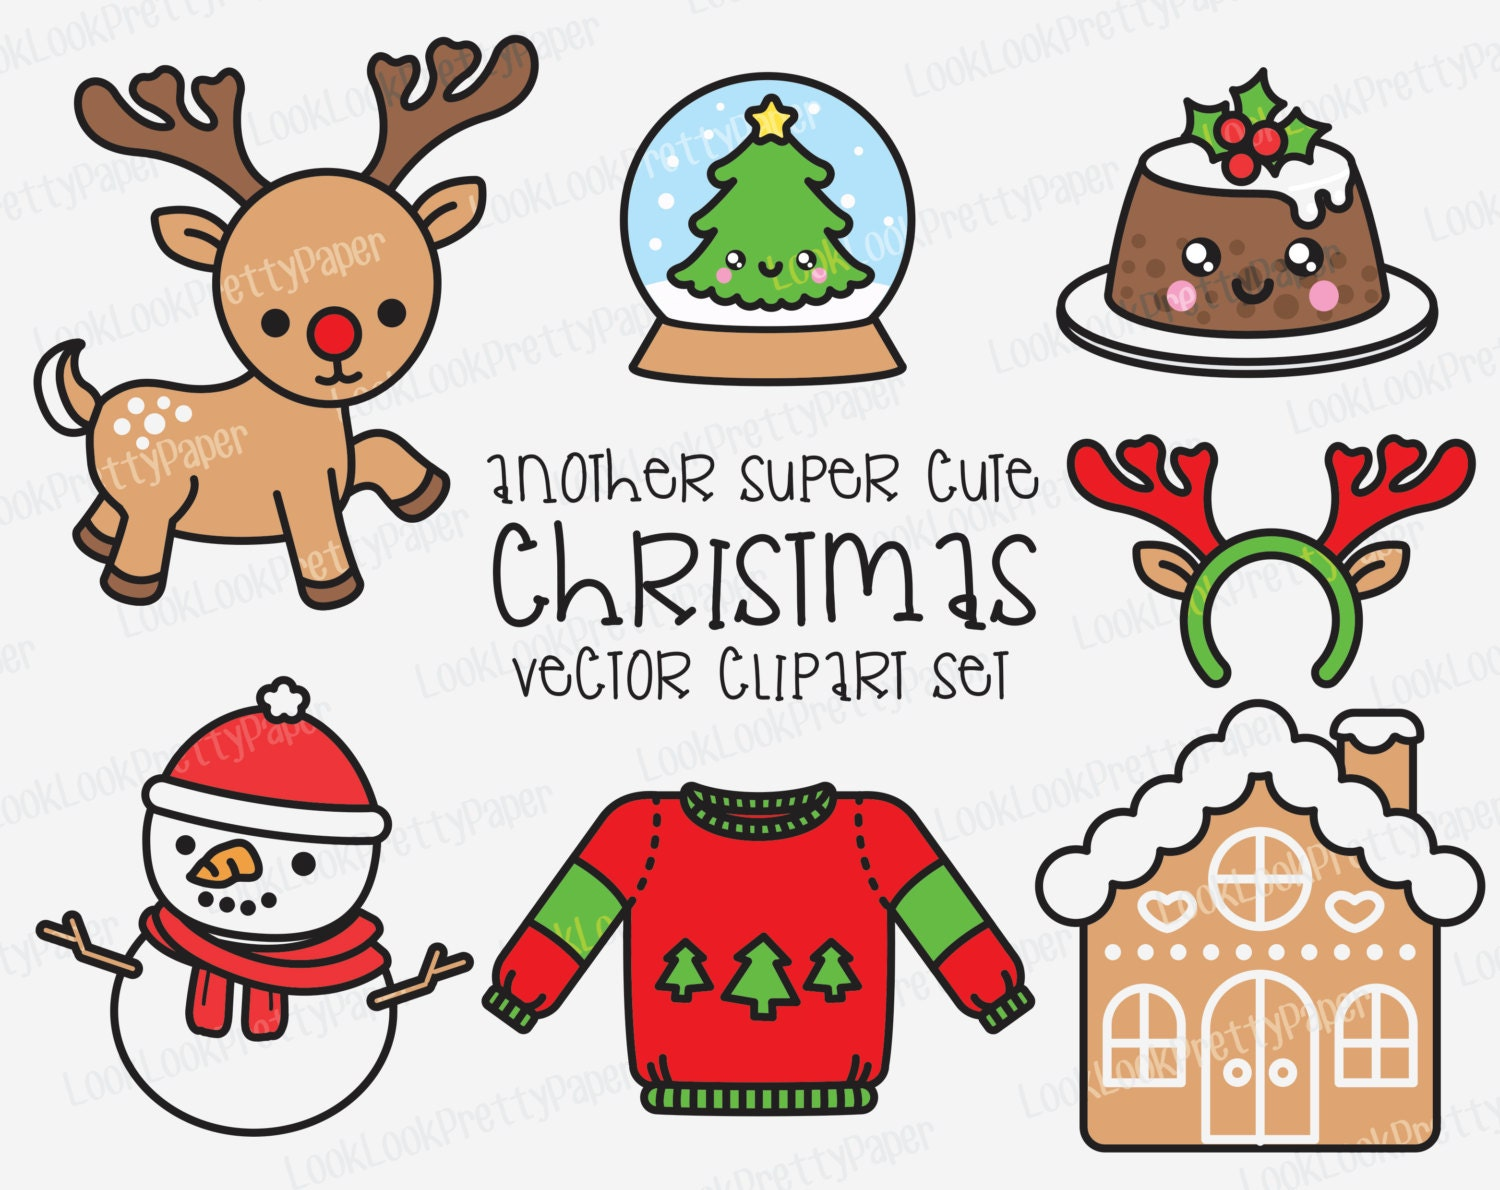 Cute Christmas Drawings Tumblr - Christmas Card Drawing Ideas from ...